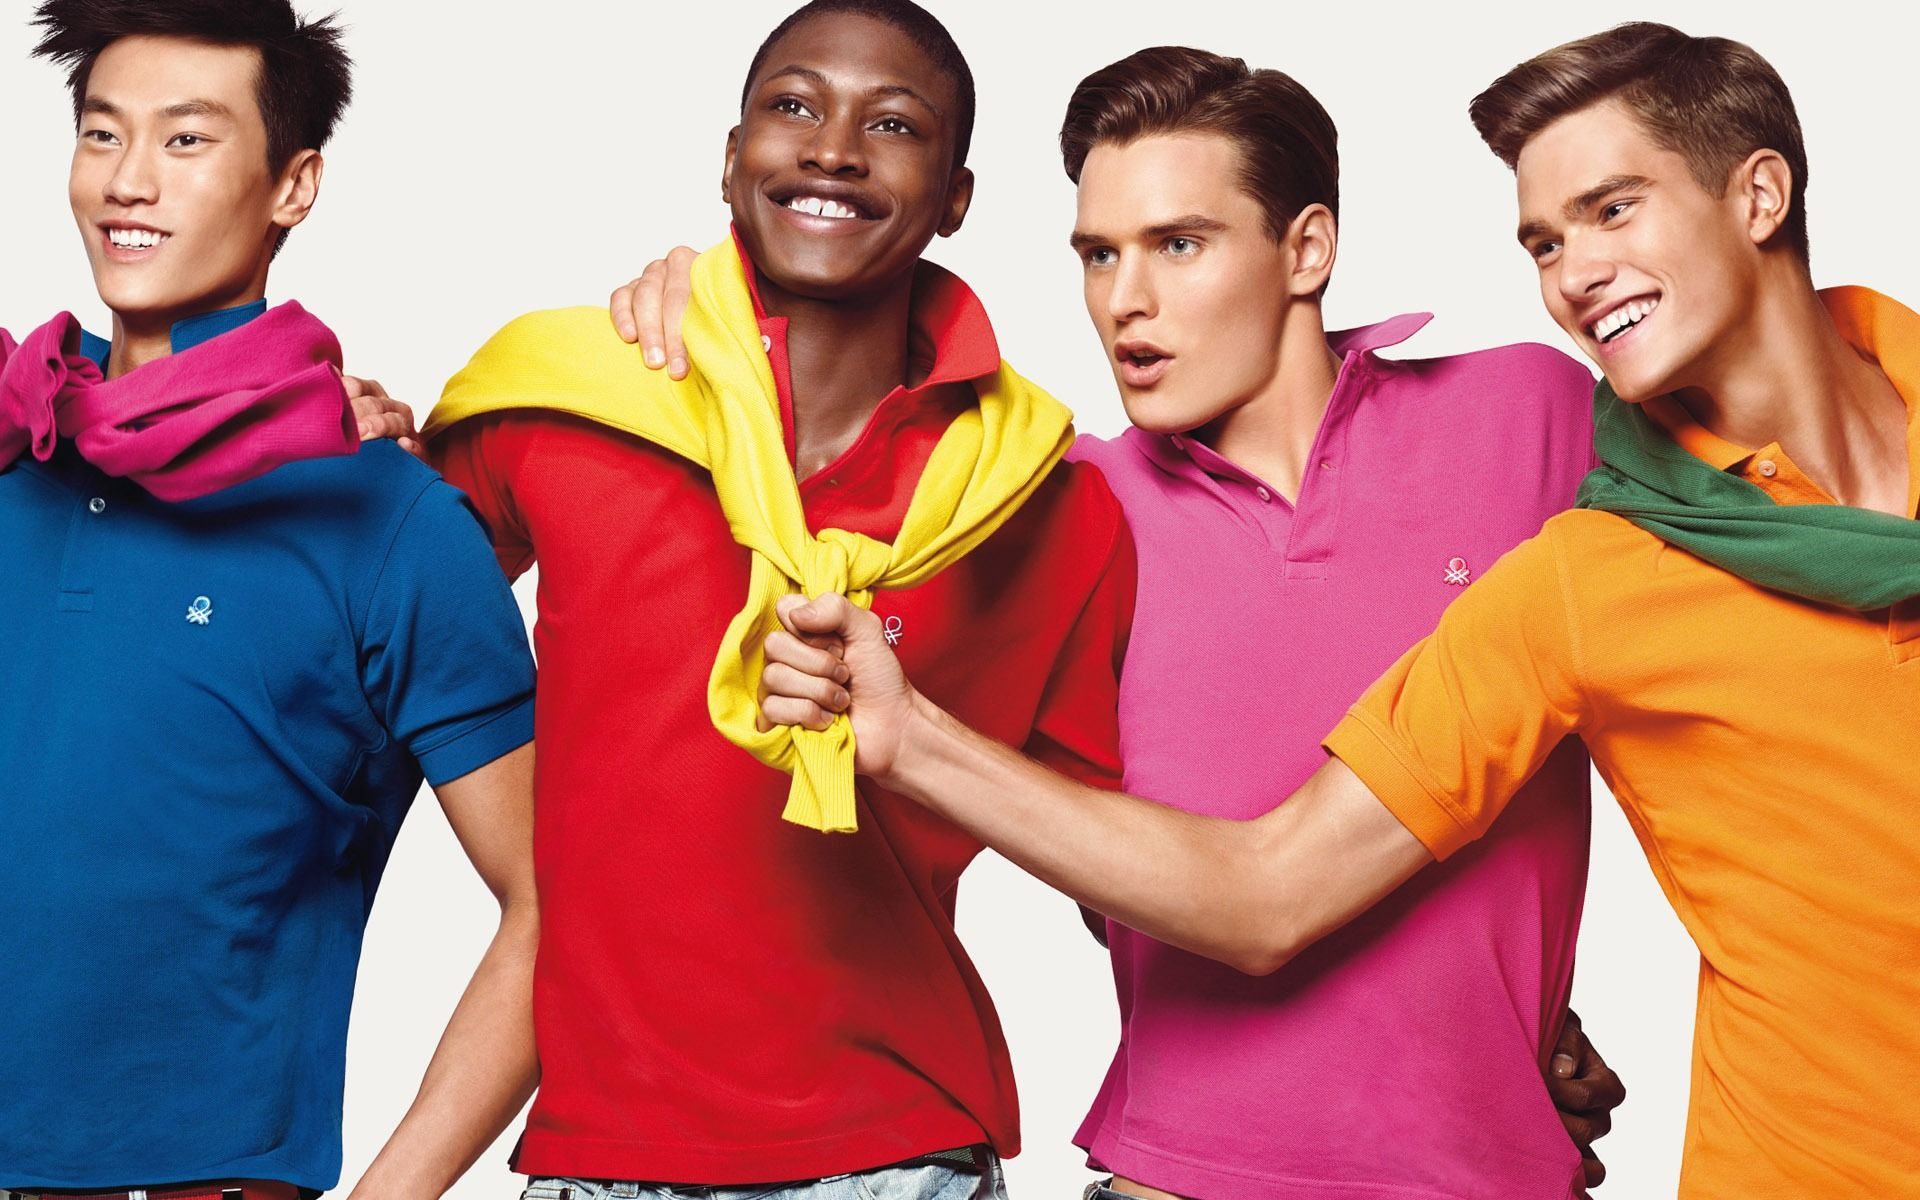 Pics for united colors of benetton models benetton for Benetton we are colors